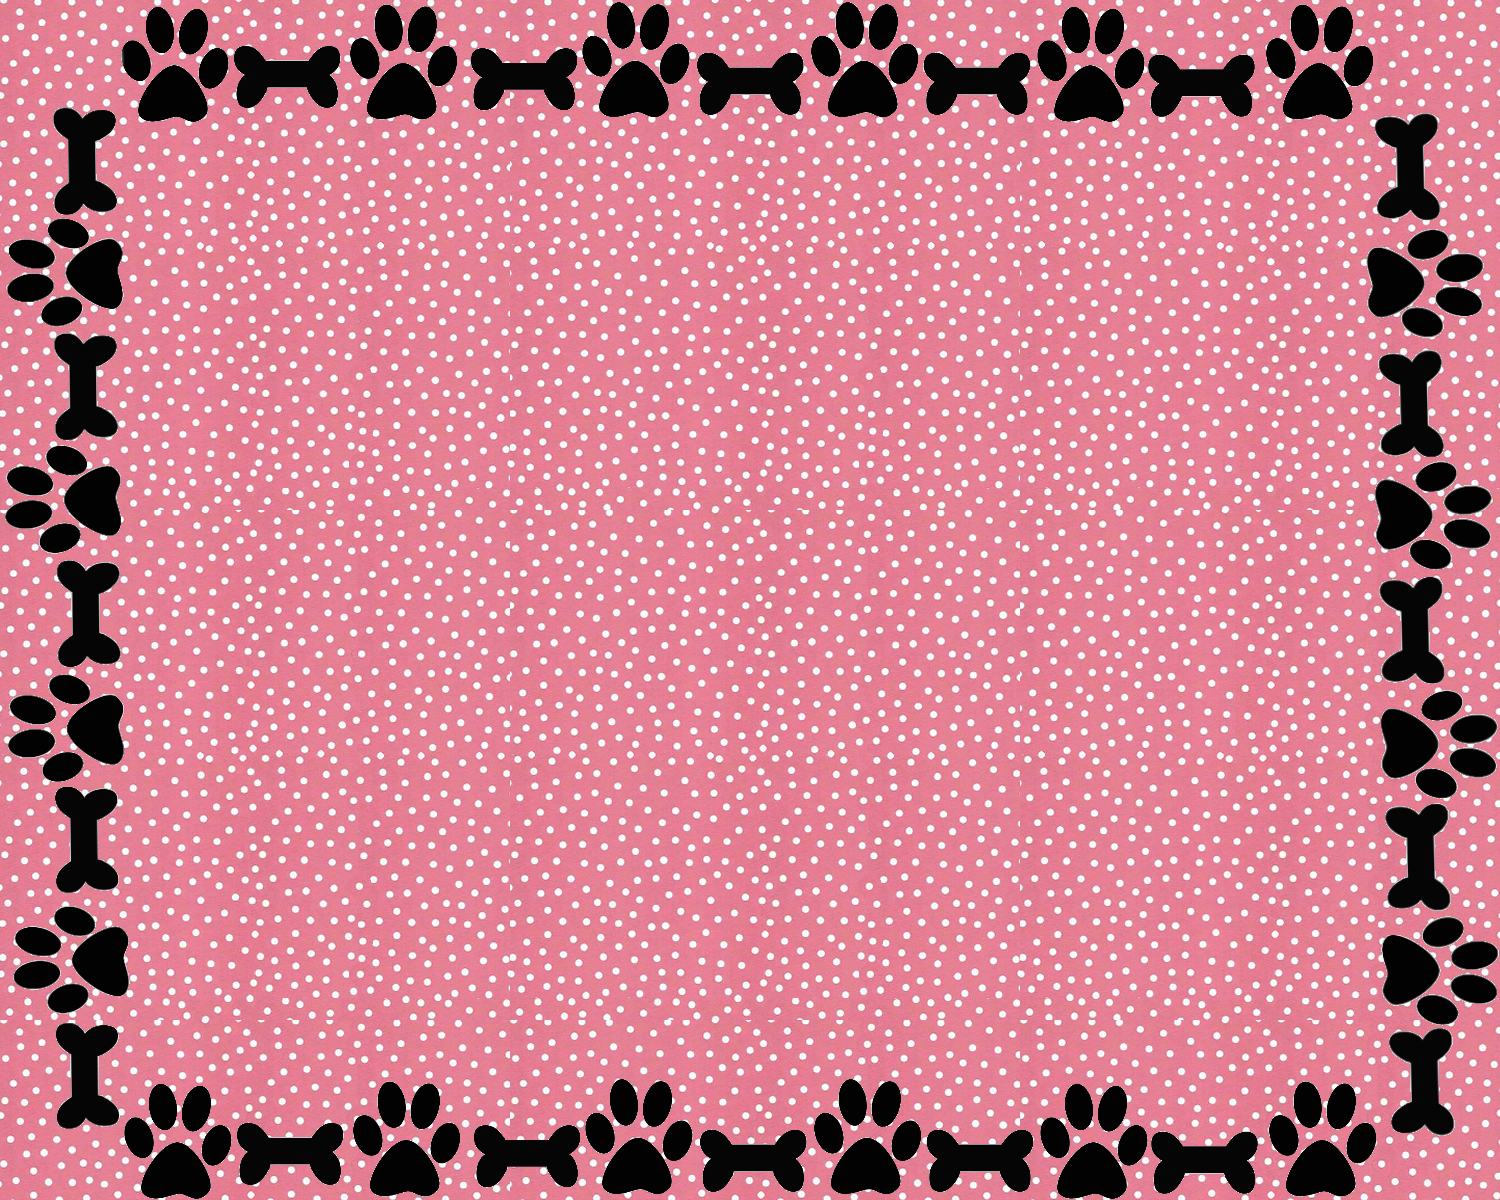 41 Dog Paw Print Wallpaper Border On Wallpapersafari Browse and download hd dog paw print png images with transparent background for free. 41 dog paw print wallpaper border on